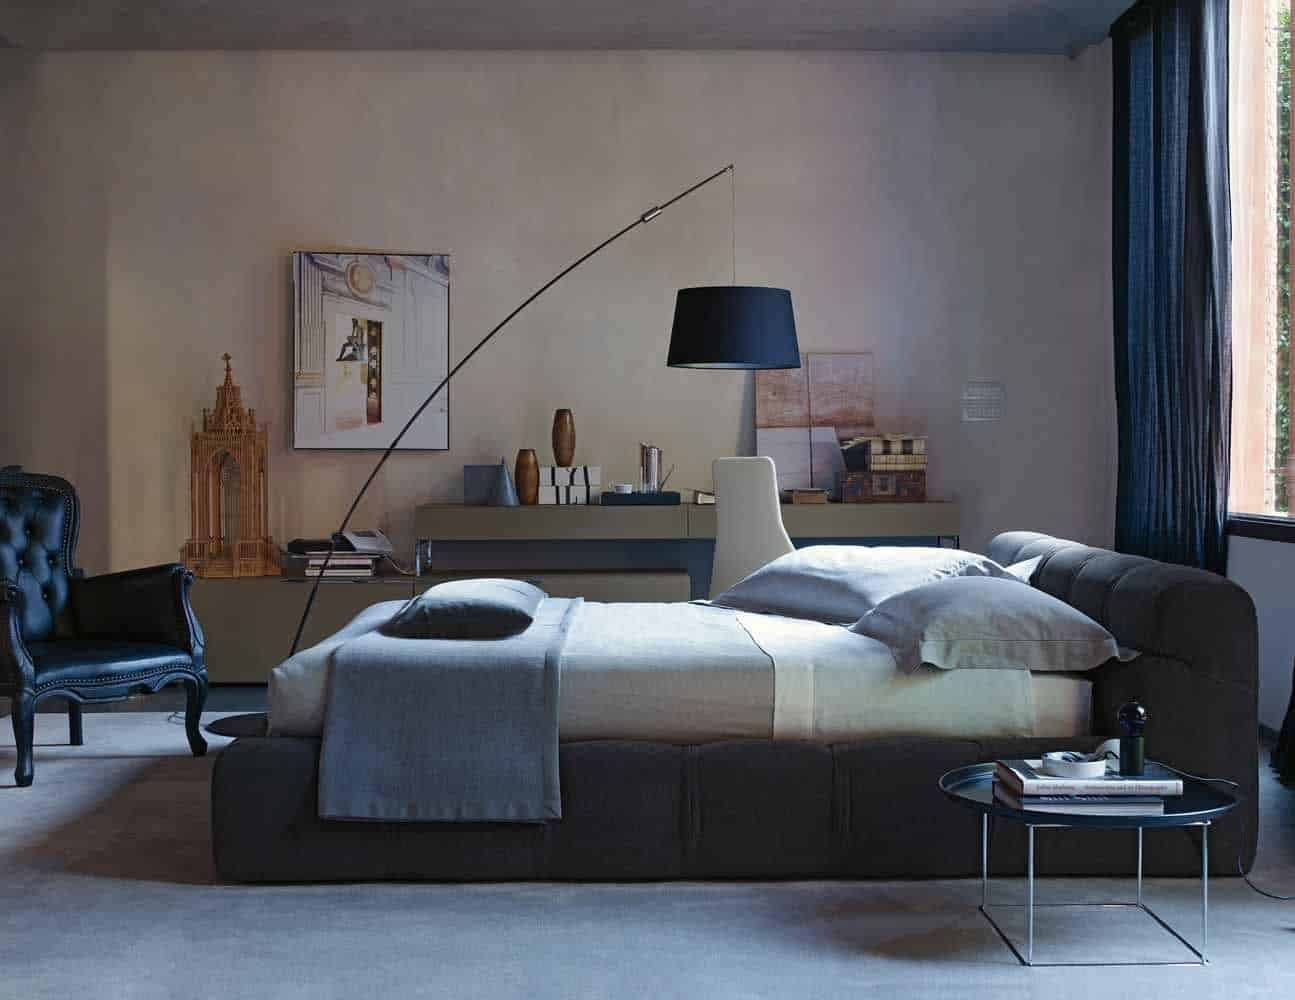 The Bedroom Above Also Draws Attention To The Light Above The Bed, Only  This One Is A Floor Light Cantilevered Over The Bed. What A Great Way To  Incorporate ...